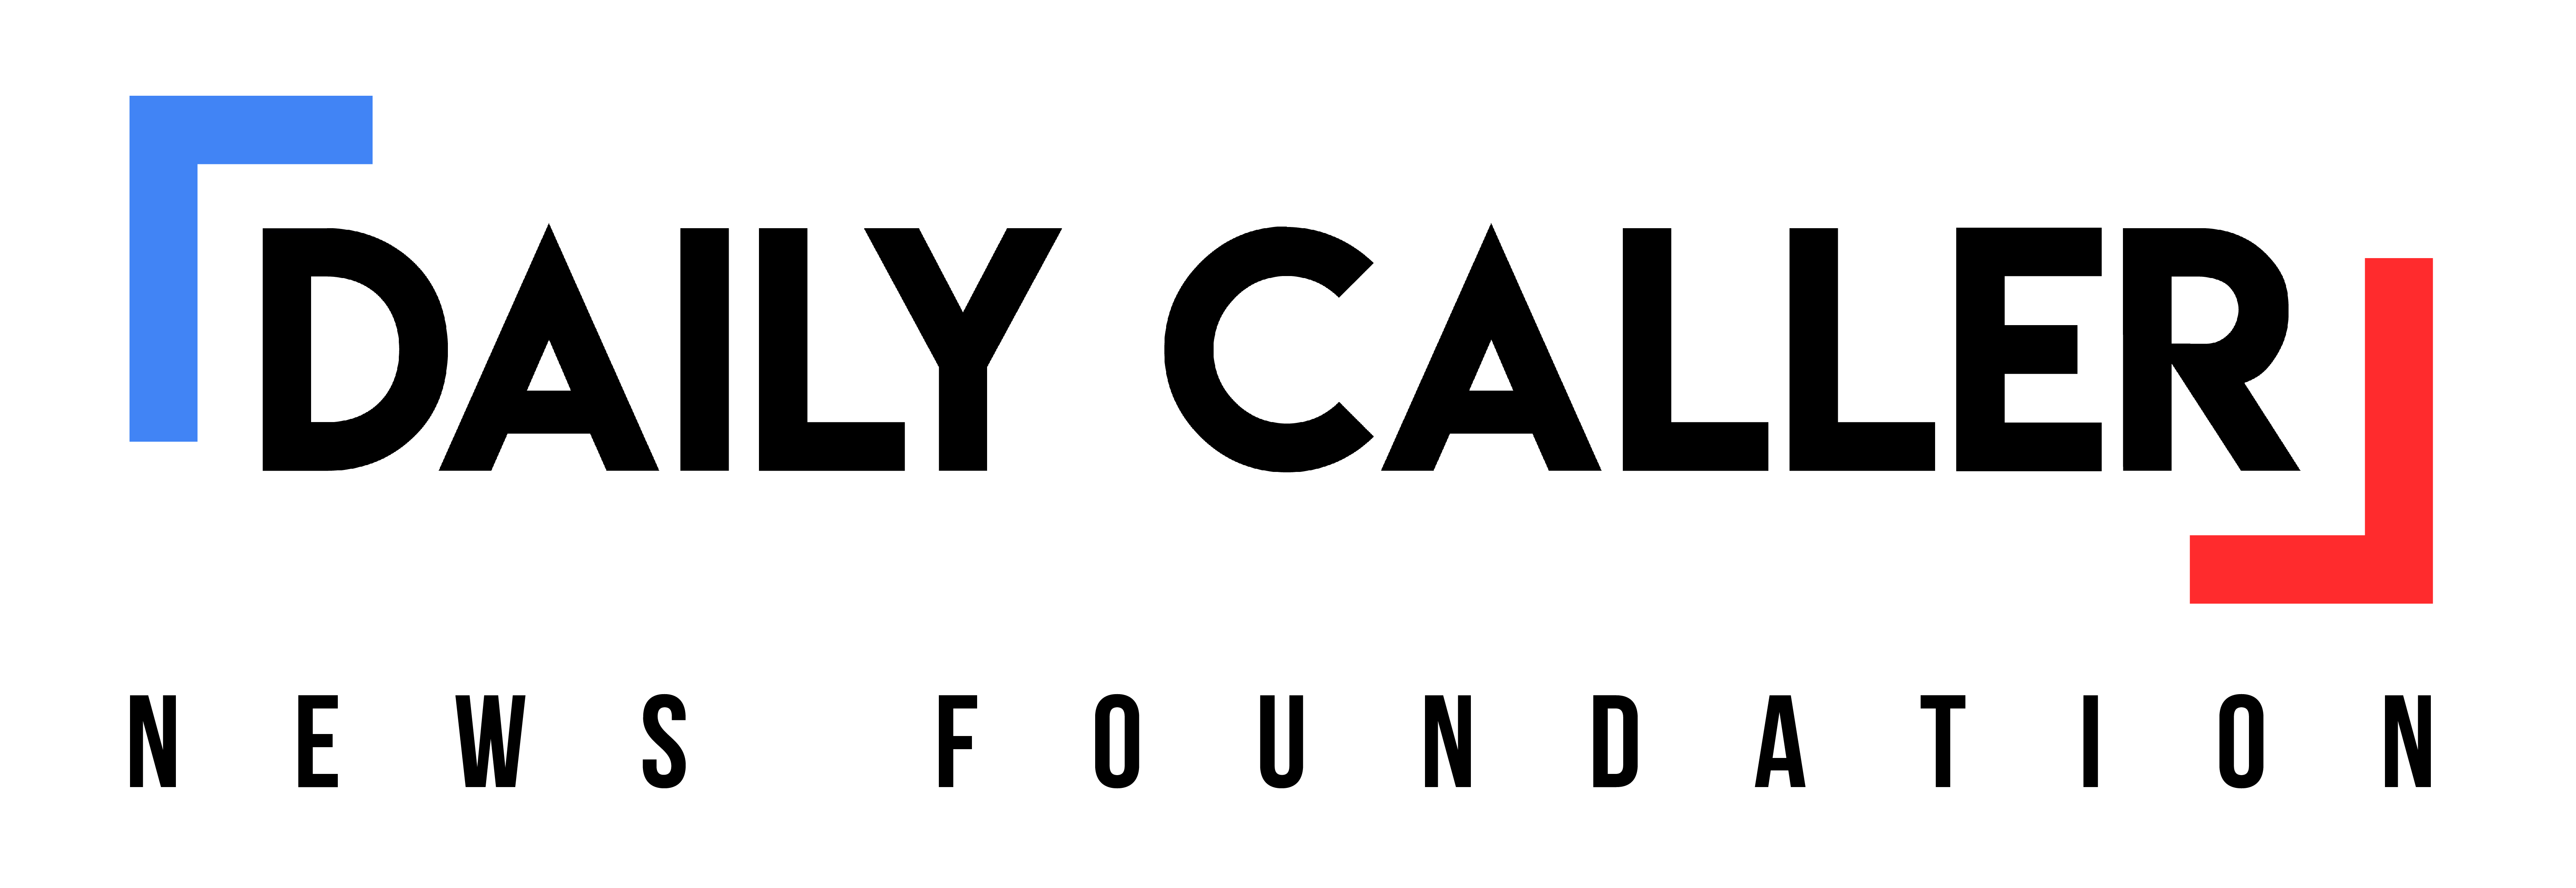 Daily Caller News Foundation